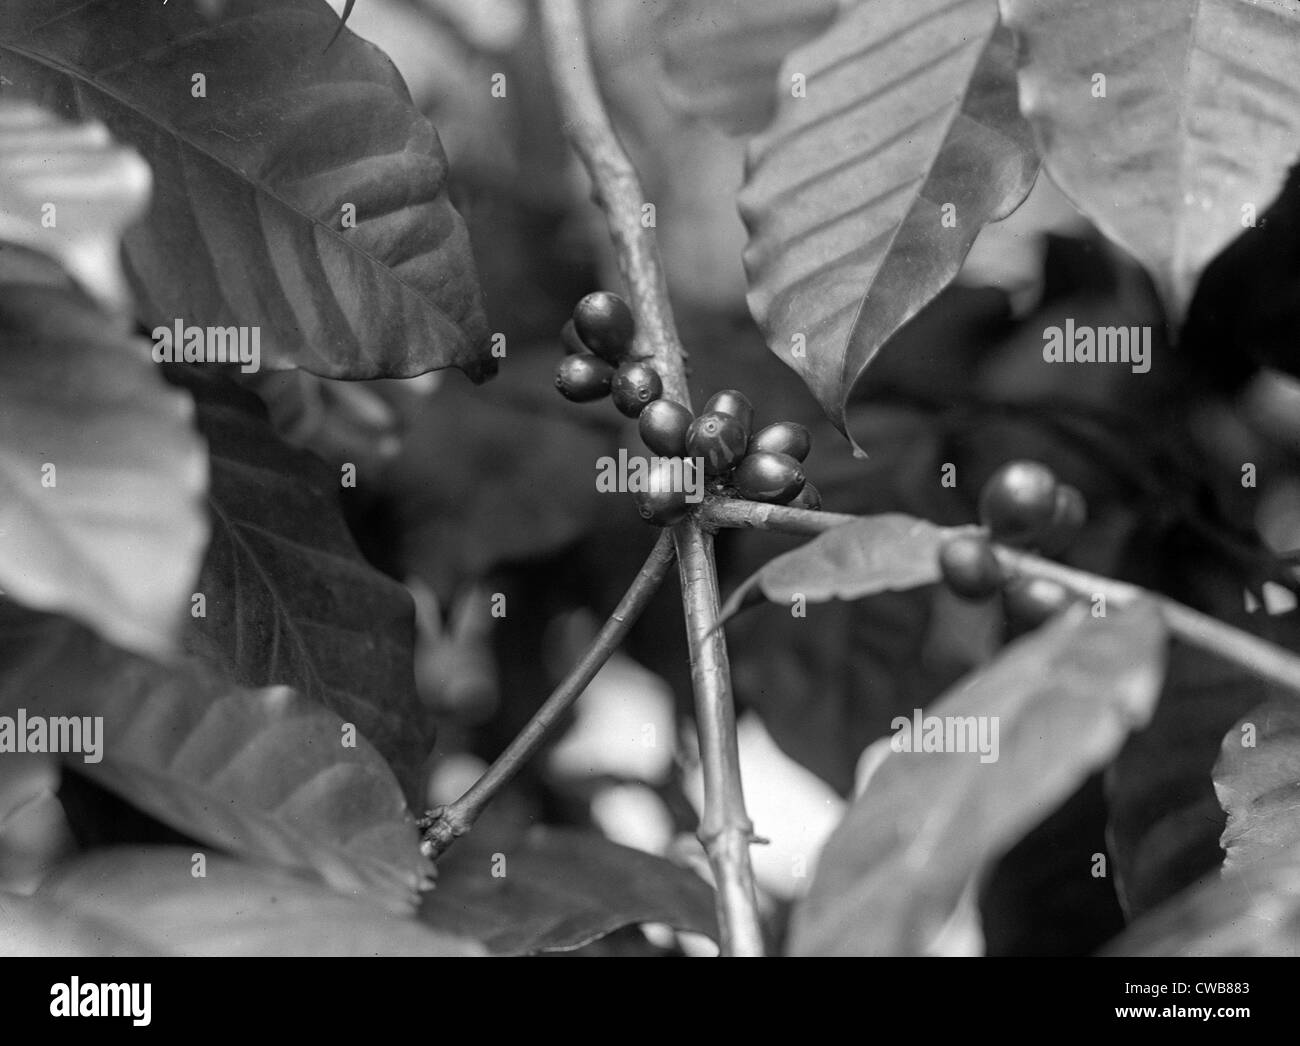 Detail of bean on coffee tree, 1910s - Stock Image